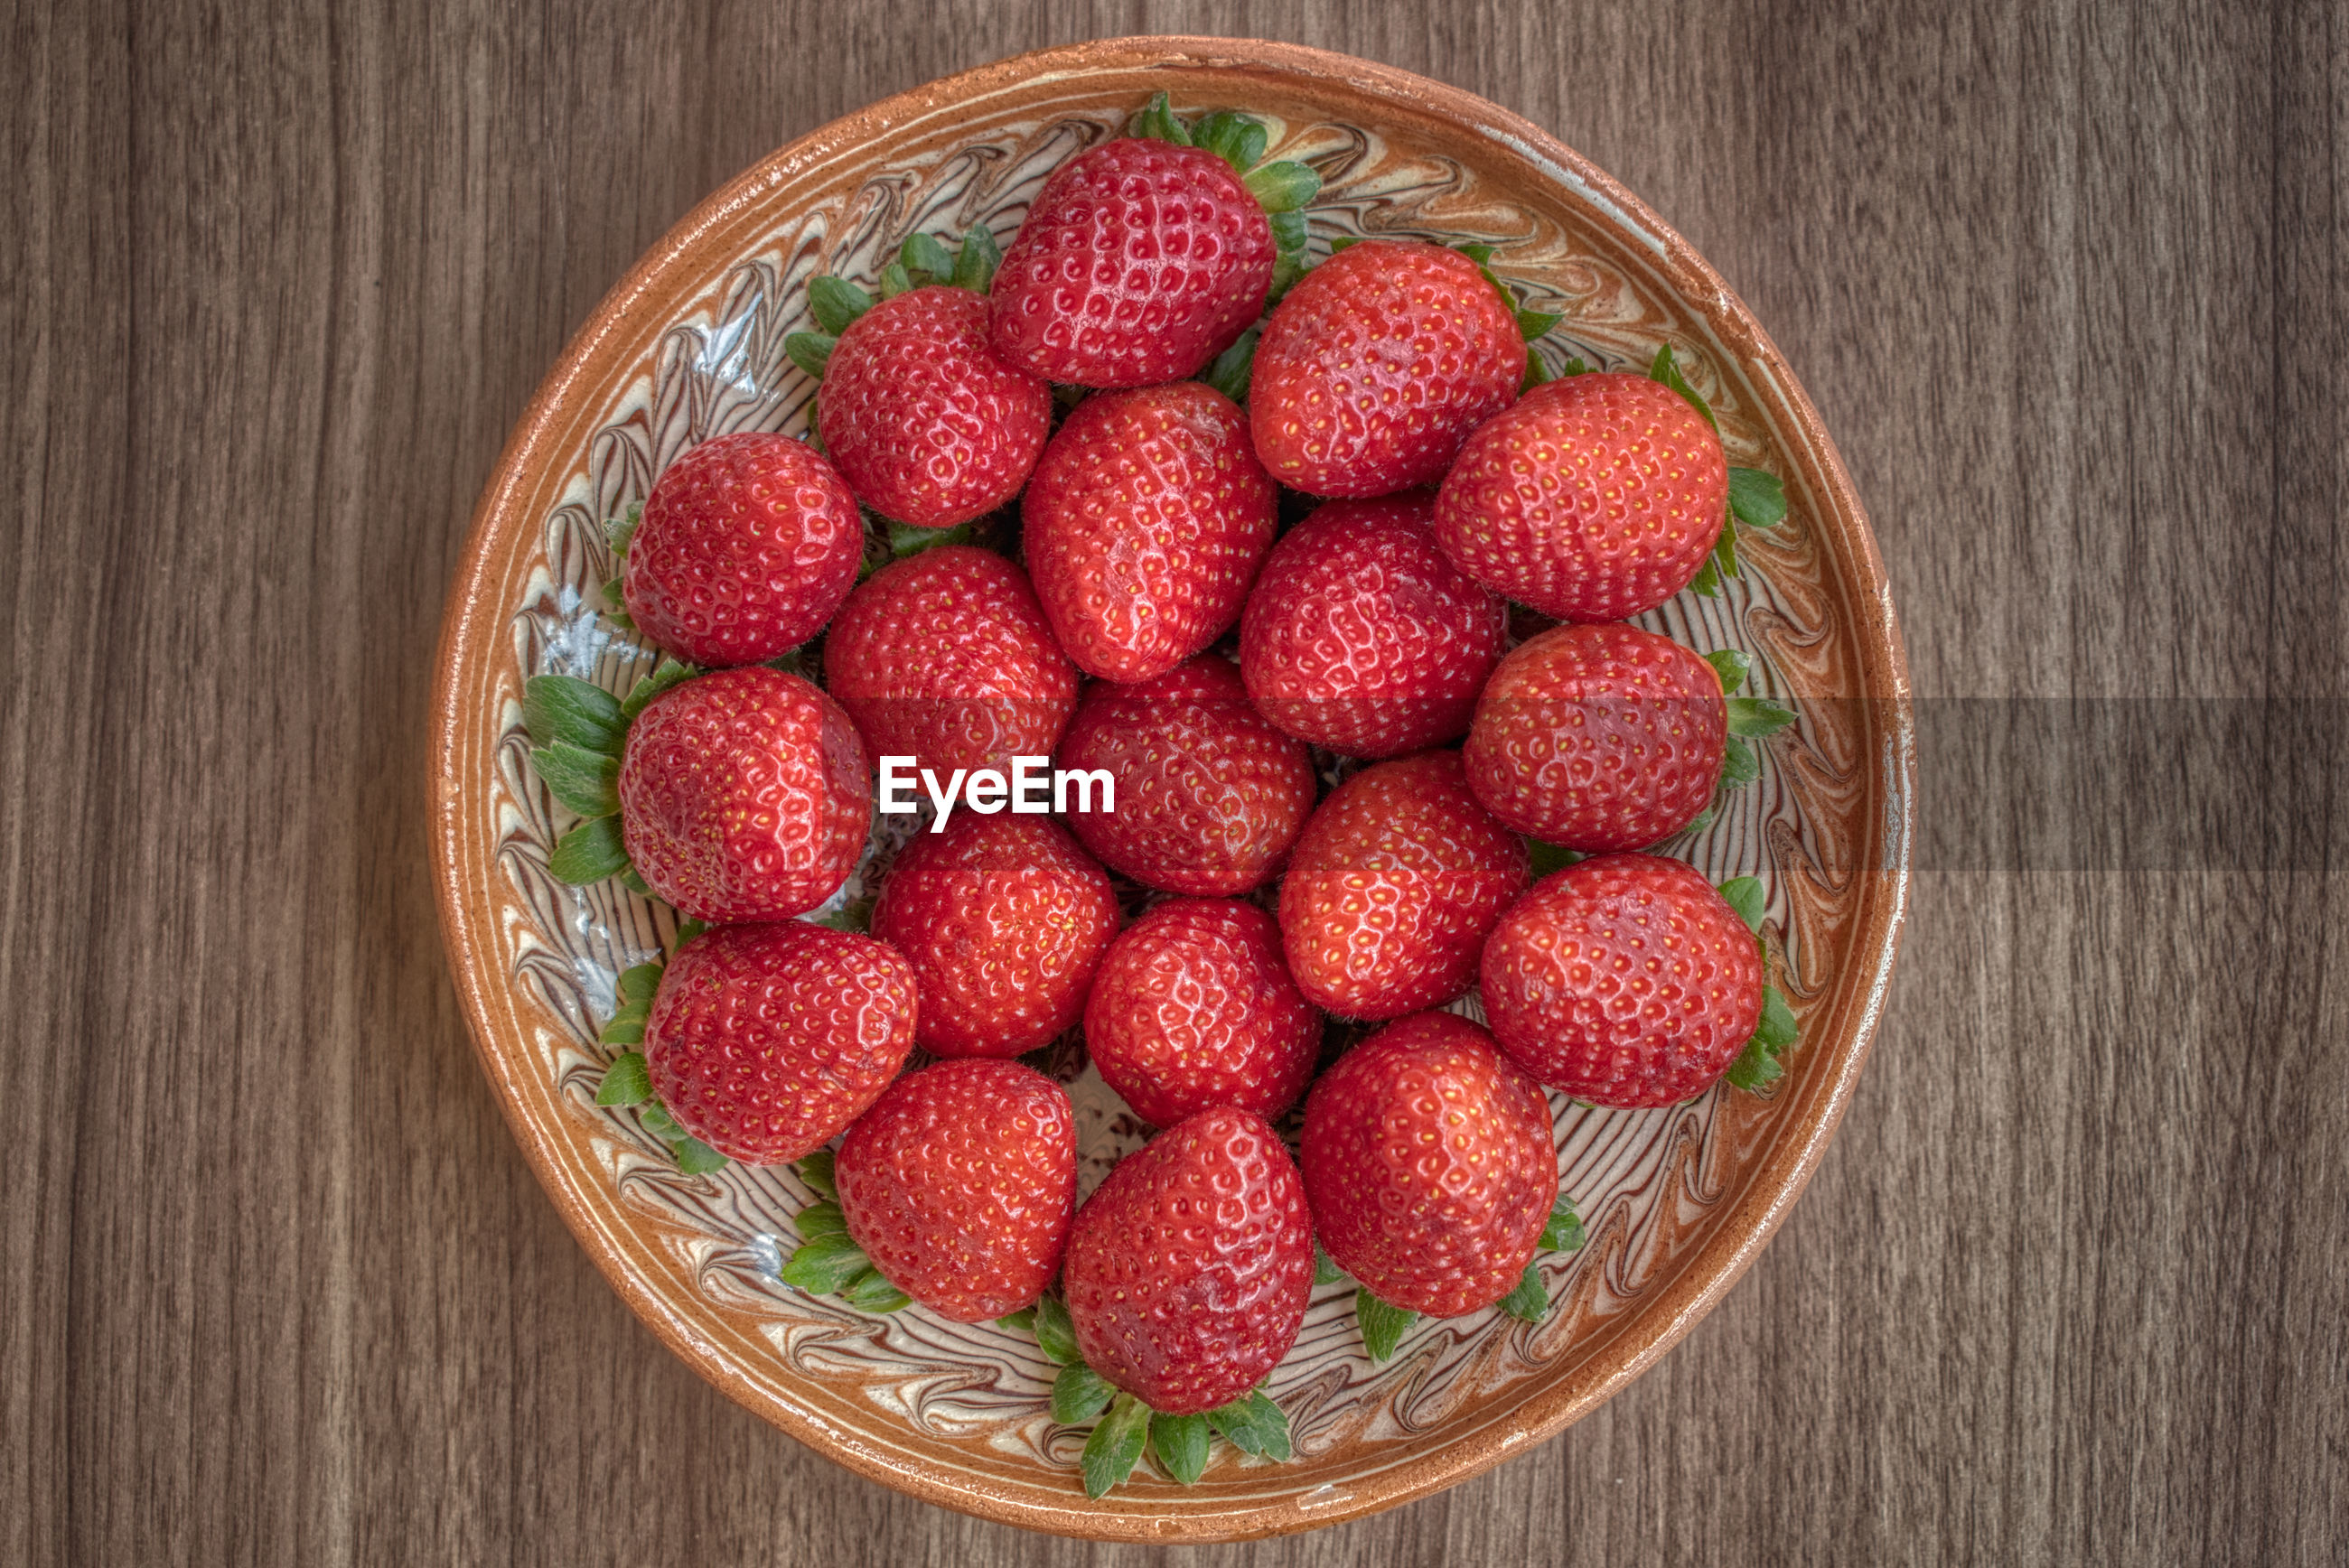 DIRECTLY ABOVE SHOT OF RASPBERRIES IN BOWL ON TABLE